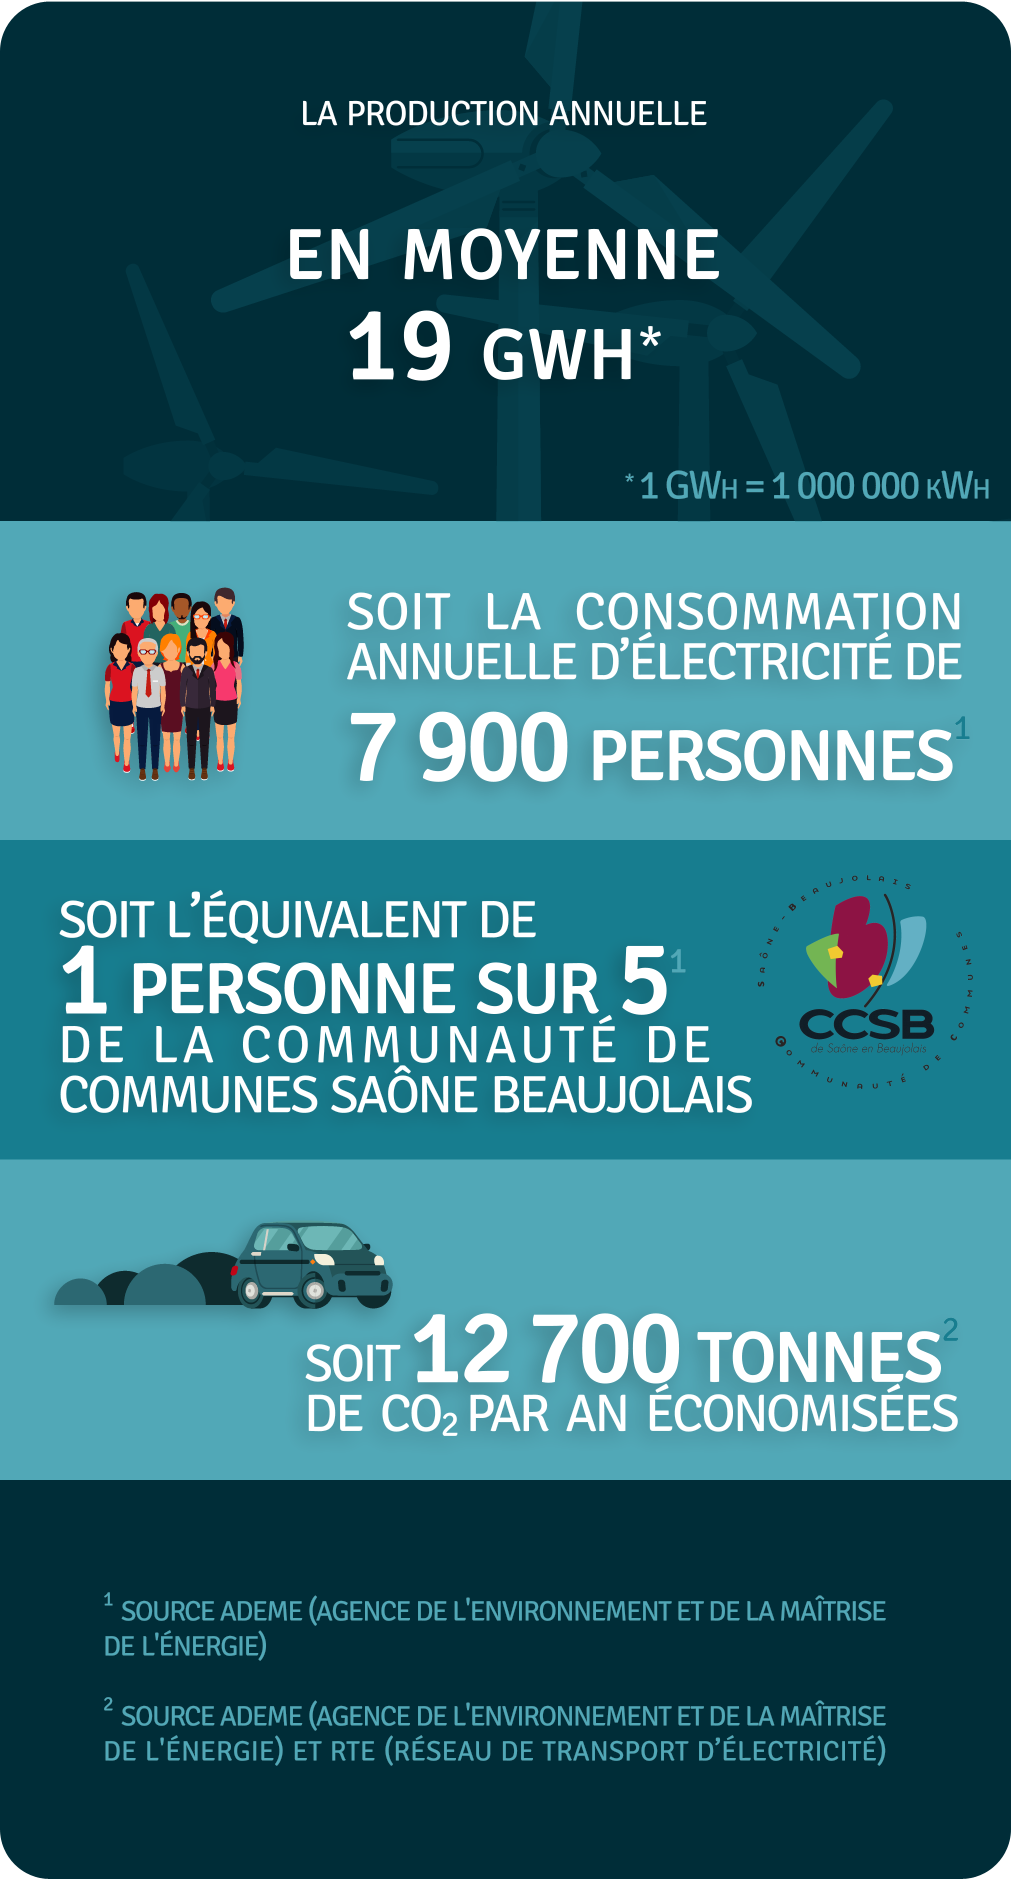 Production annuelle 19 000 000 kWh